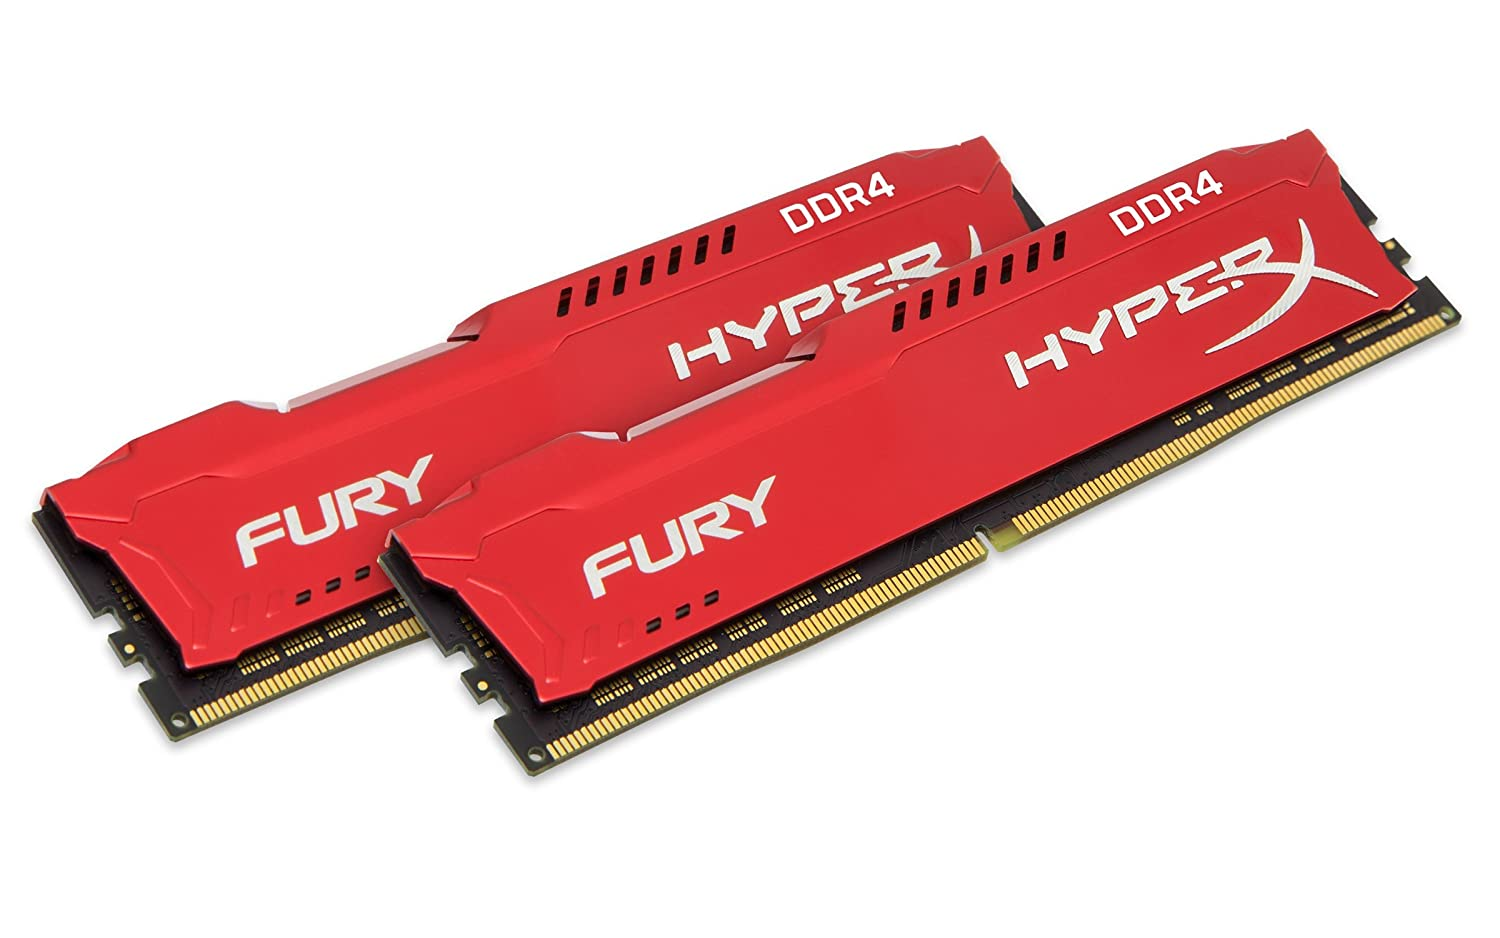 "זיכרון Kingston Technology HyperX Fury Red 16GB 2933MHz DDR4 (כ-613 ש""ח)"